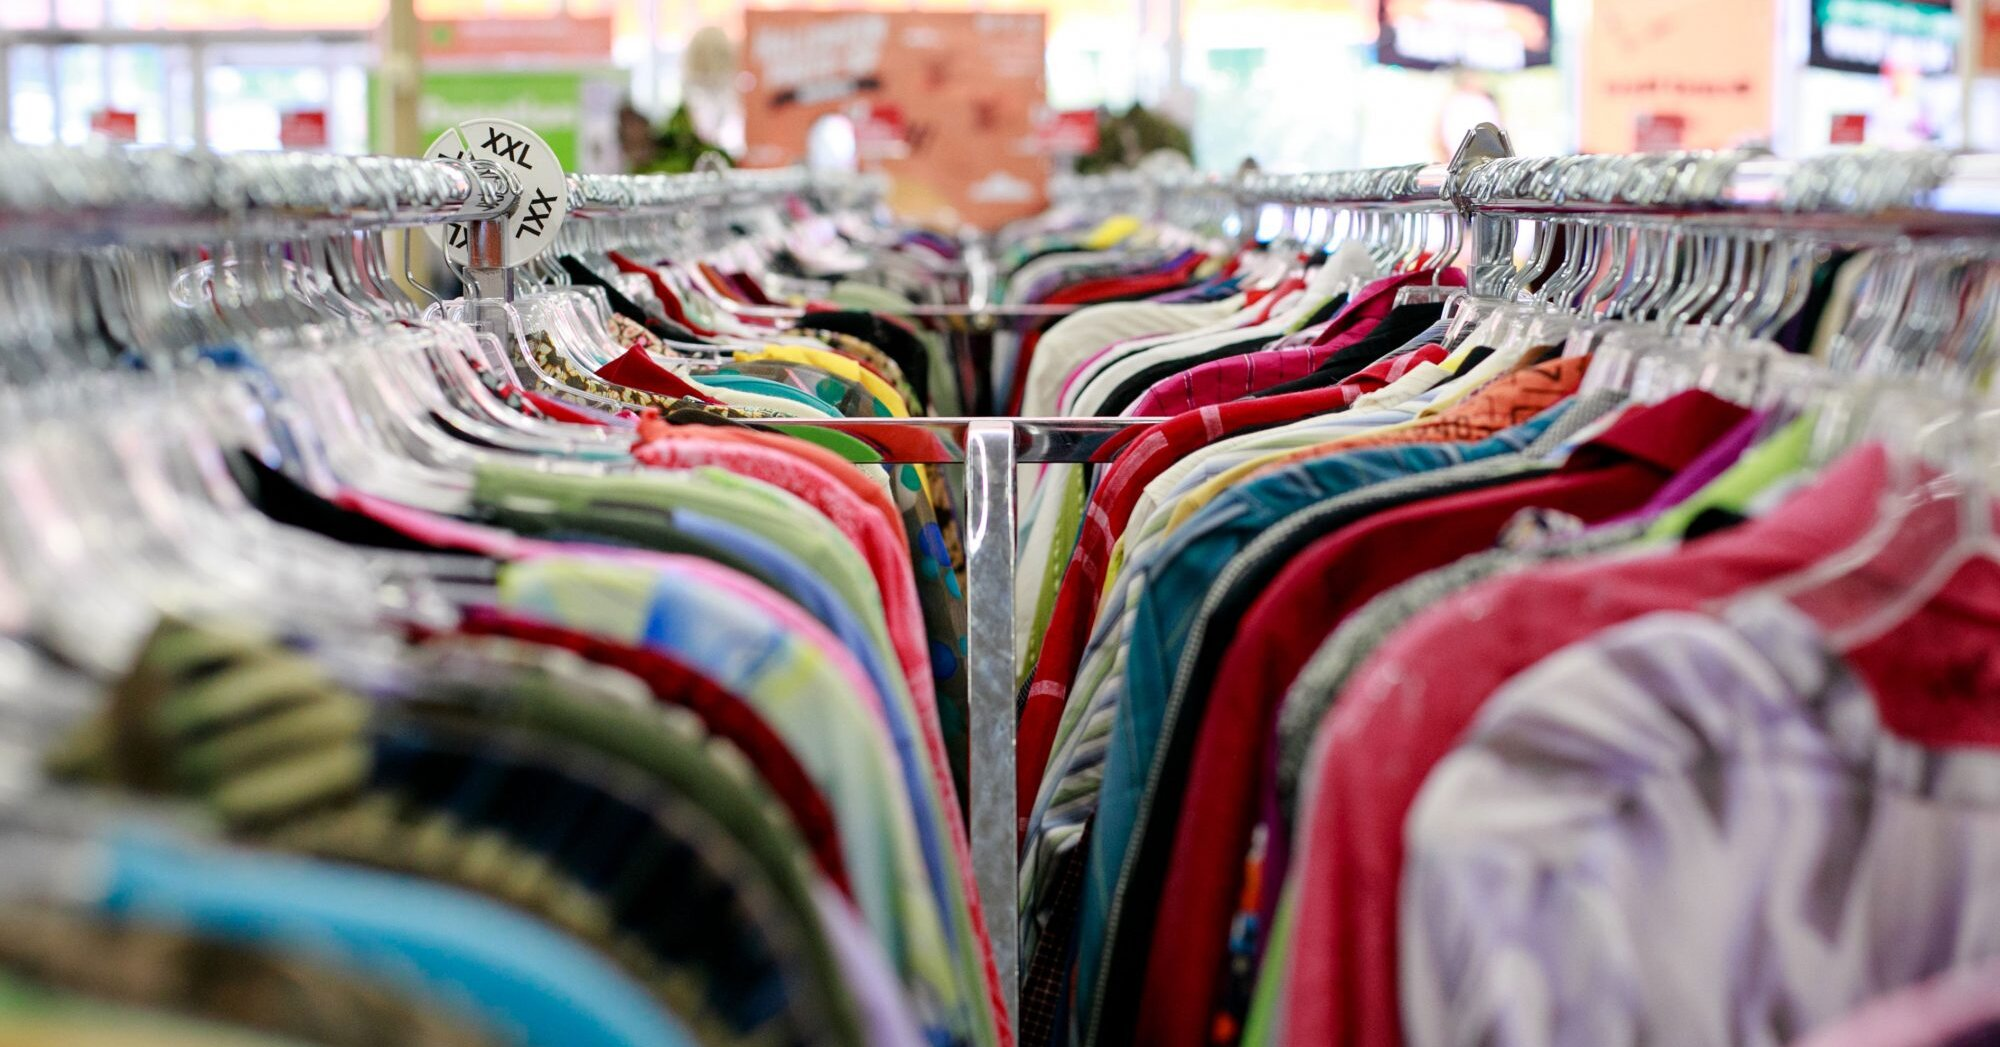 10 Shopping Tips For Scoring The Best Finds At A Thrift Store